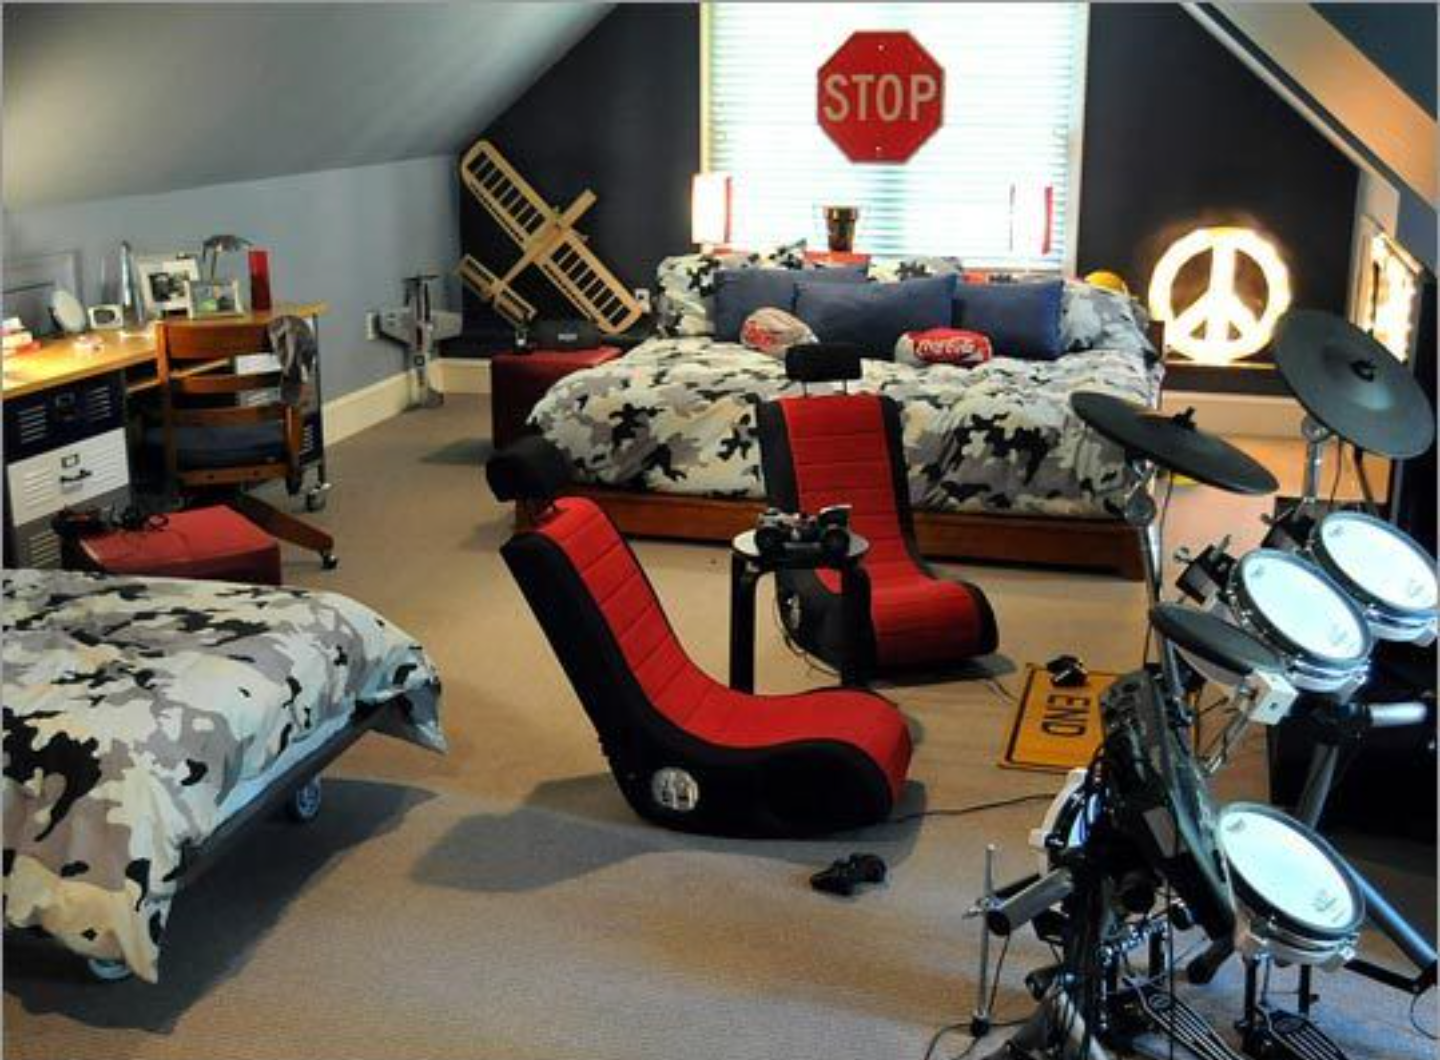 Teenage boys bedroom furniture - This Is The Perfect Shared Bedroom For Preteen Brothers Teens Judging By The Larger